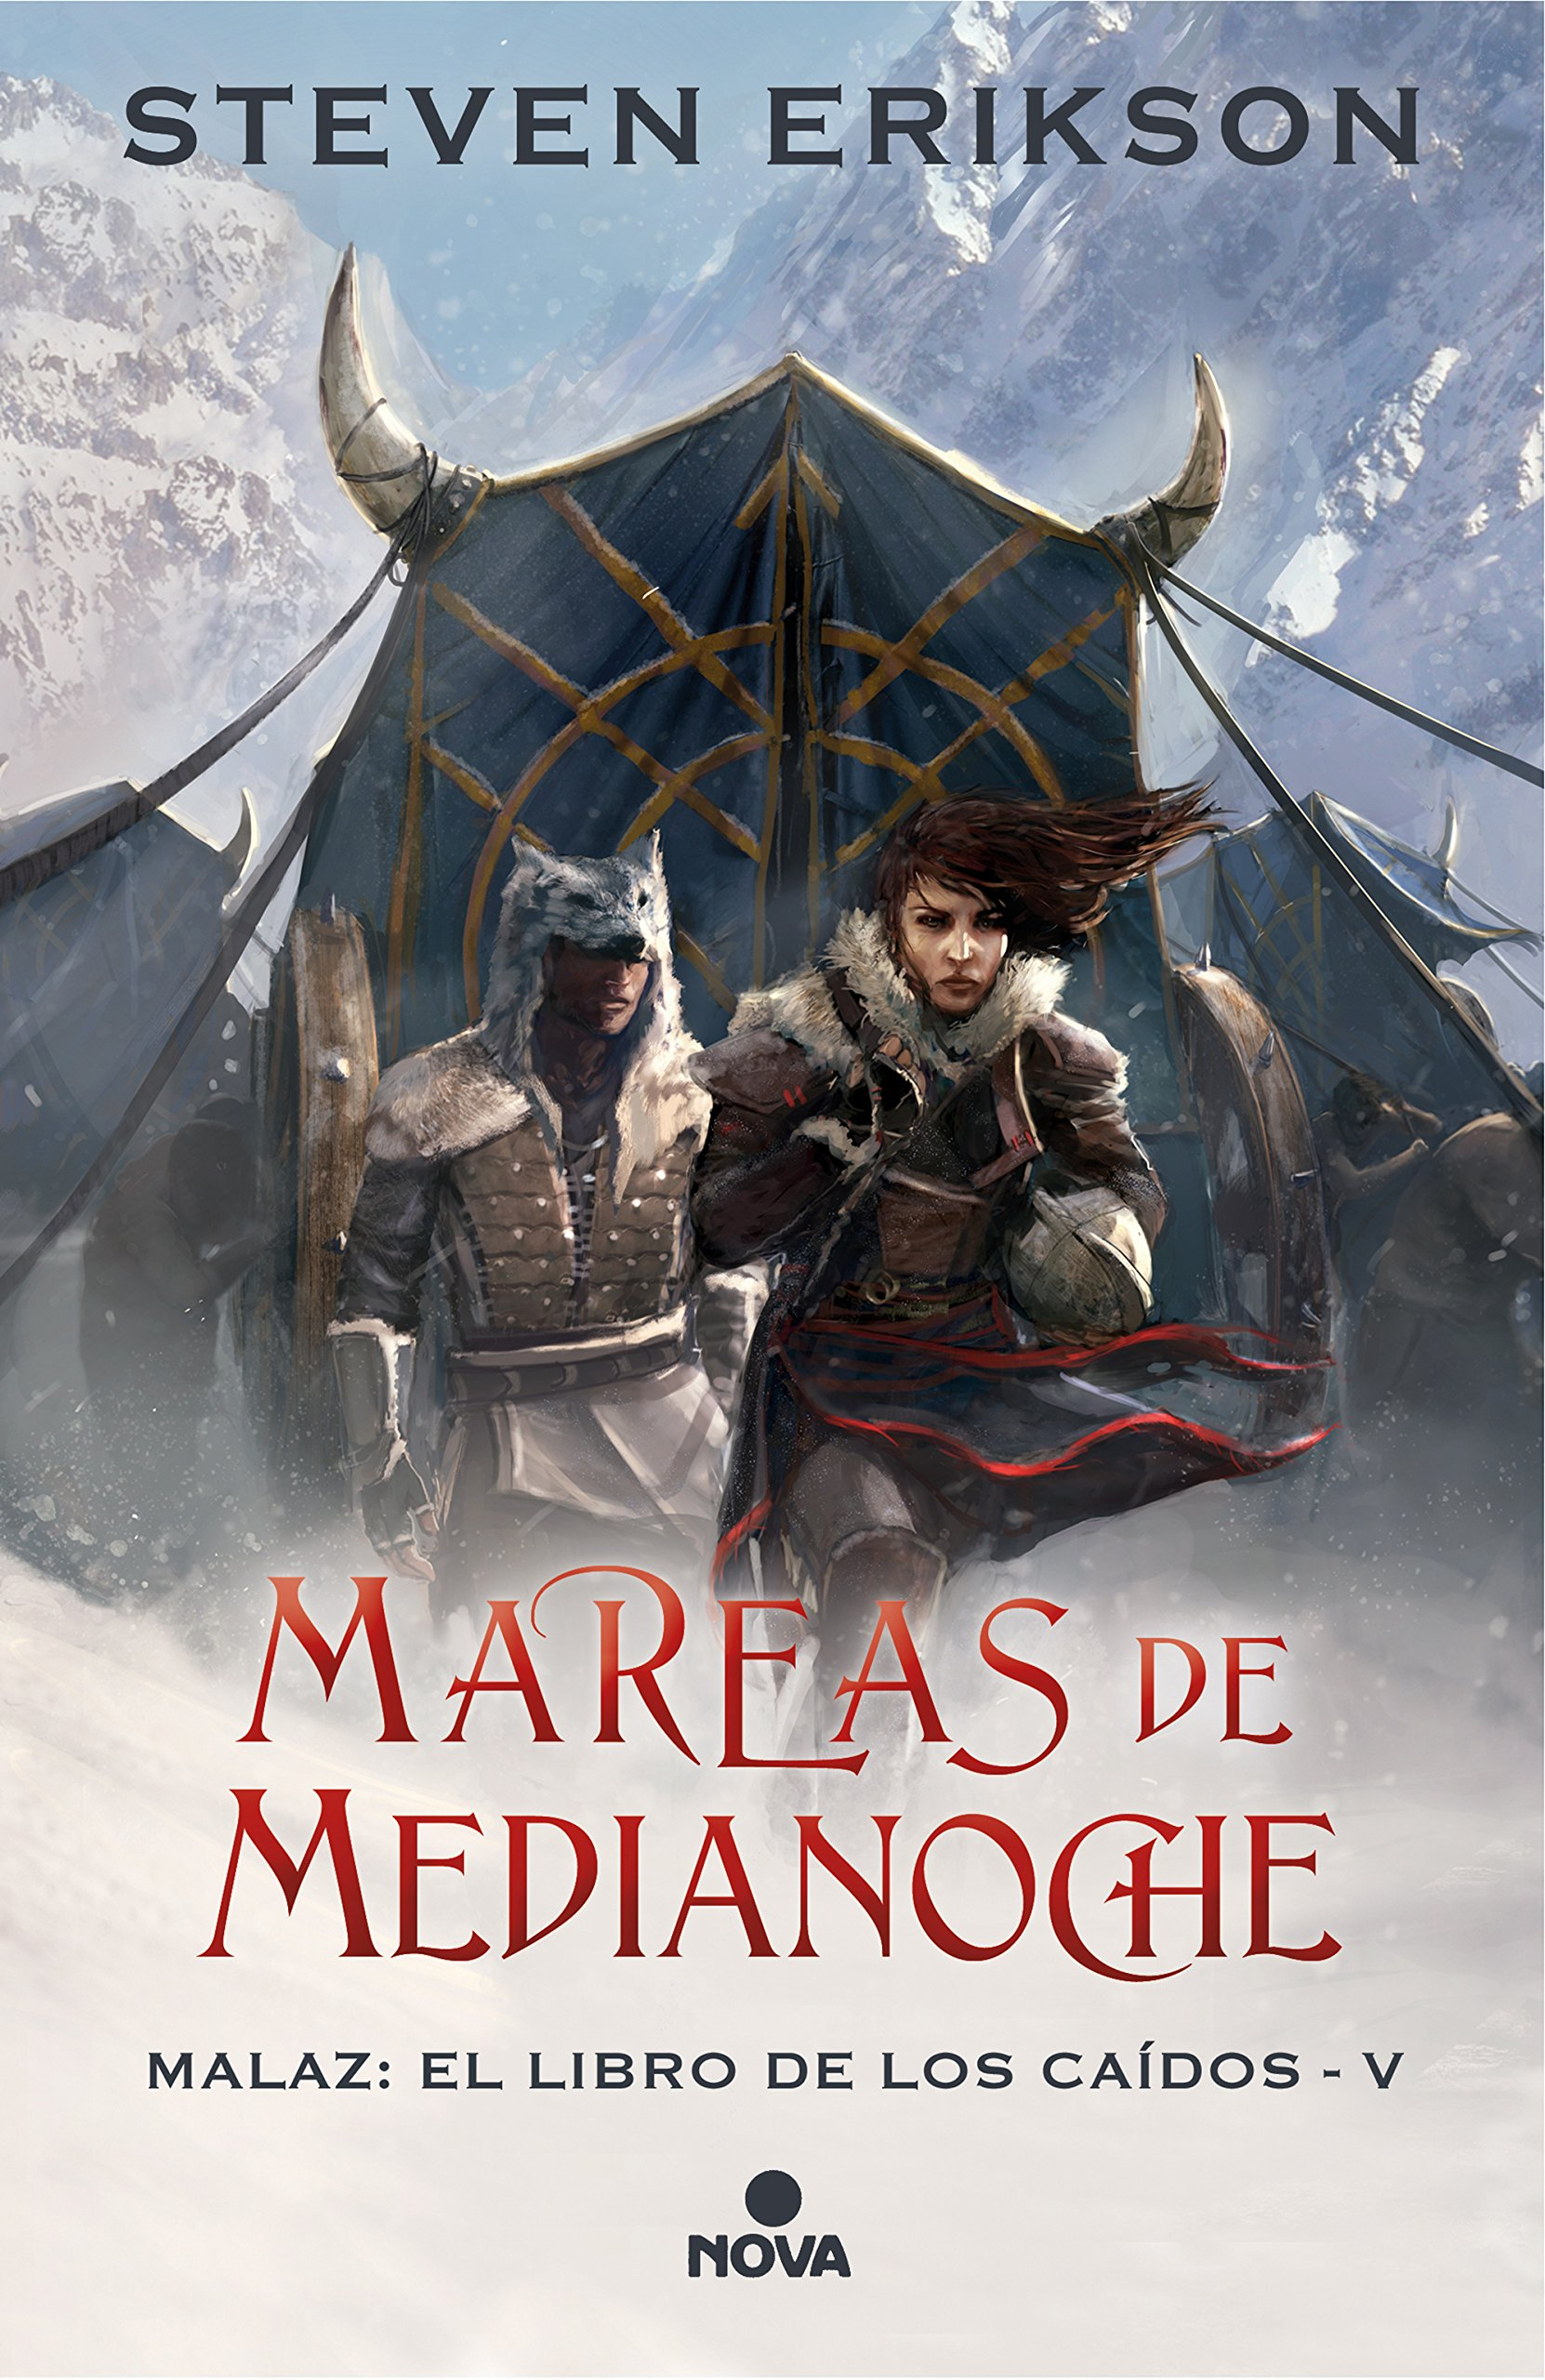 Mareas de Medianoche (Malaz: El Libro de los Caídos 5) (NOVA) Tapa dura – 13 sep 2018 Steven Erikson 8417347224 FICTION / Alternative History FICTION / Fantasy / Epic